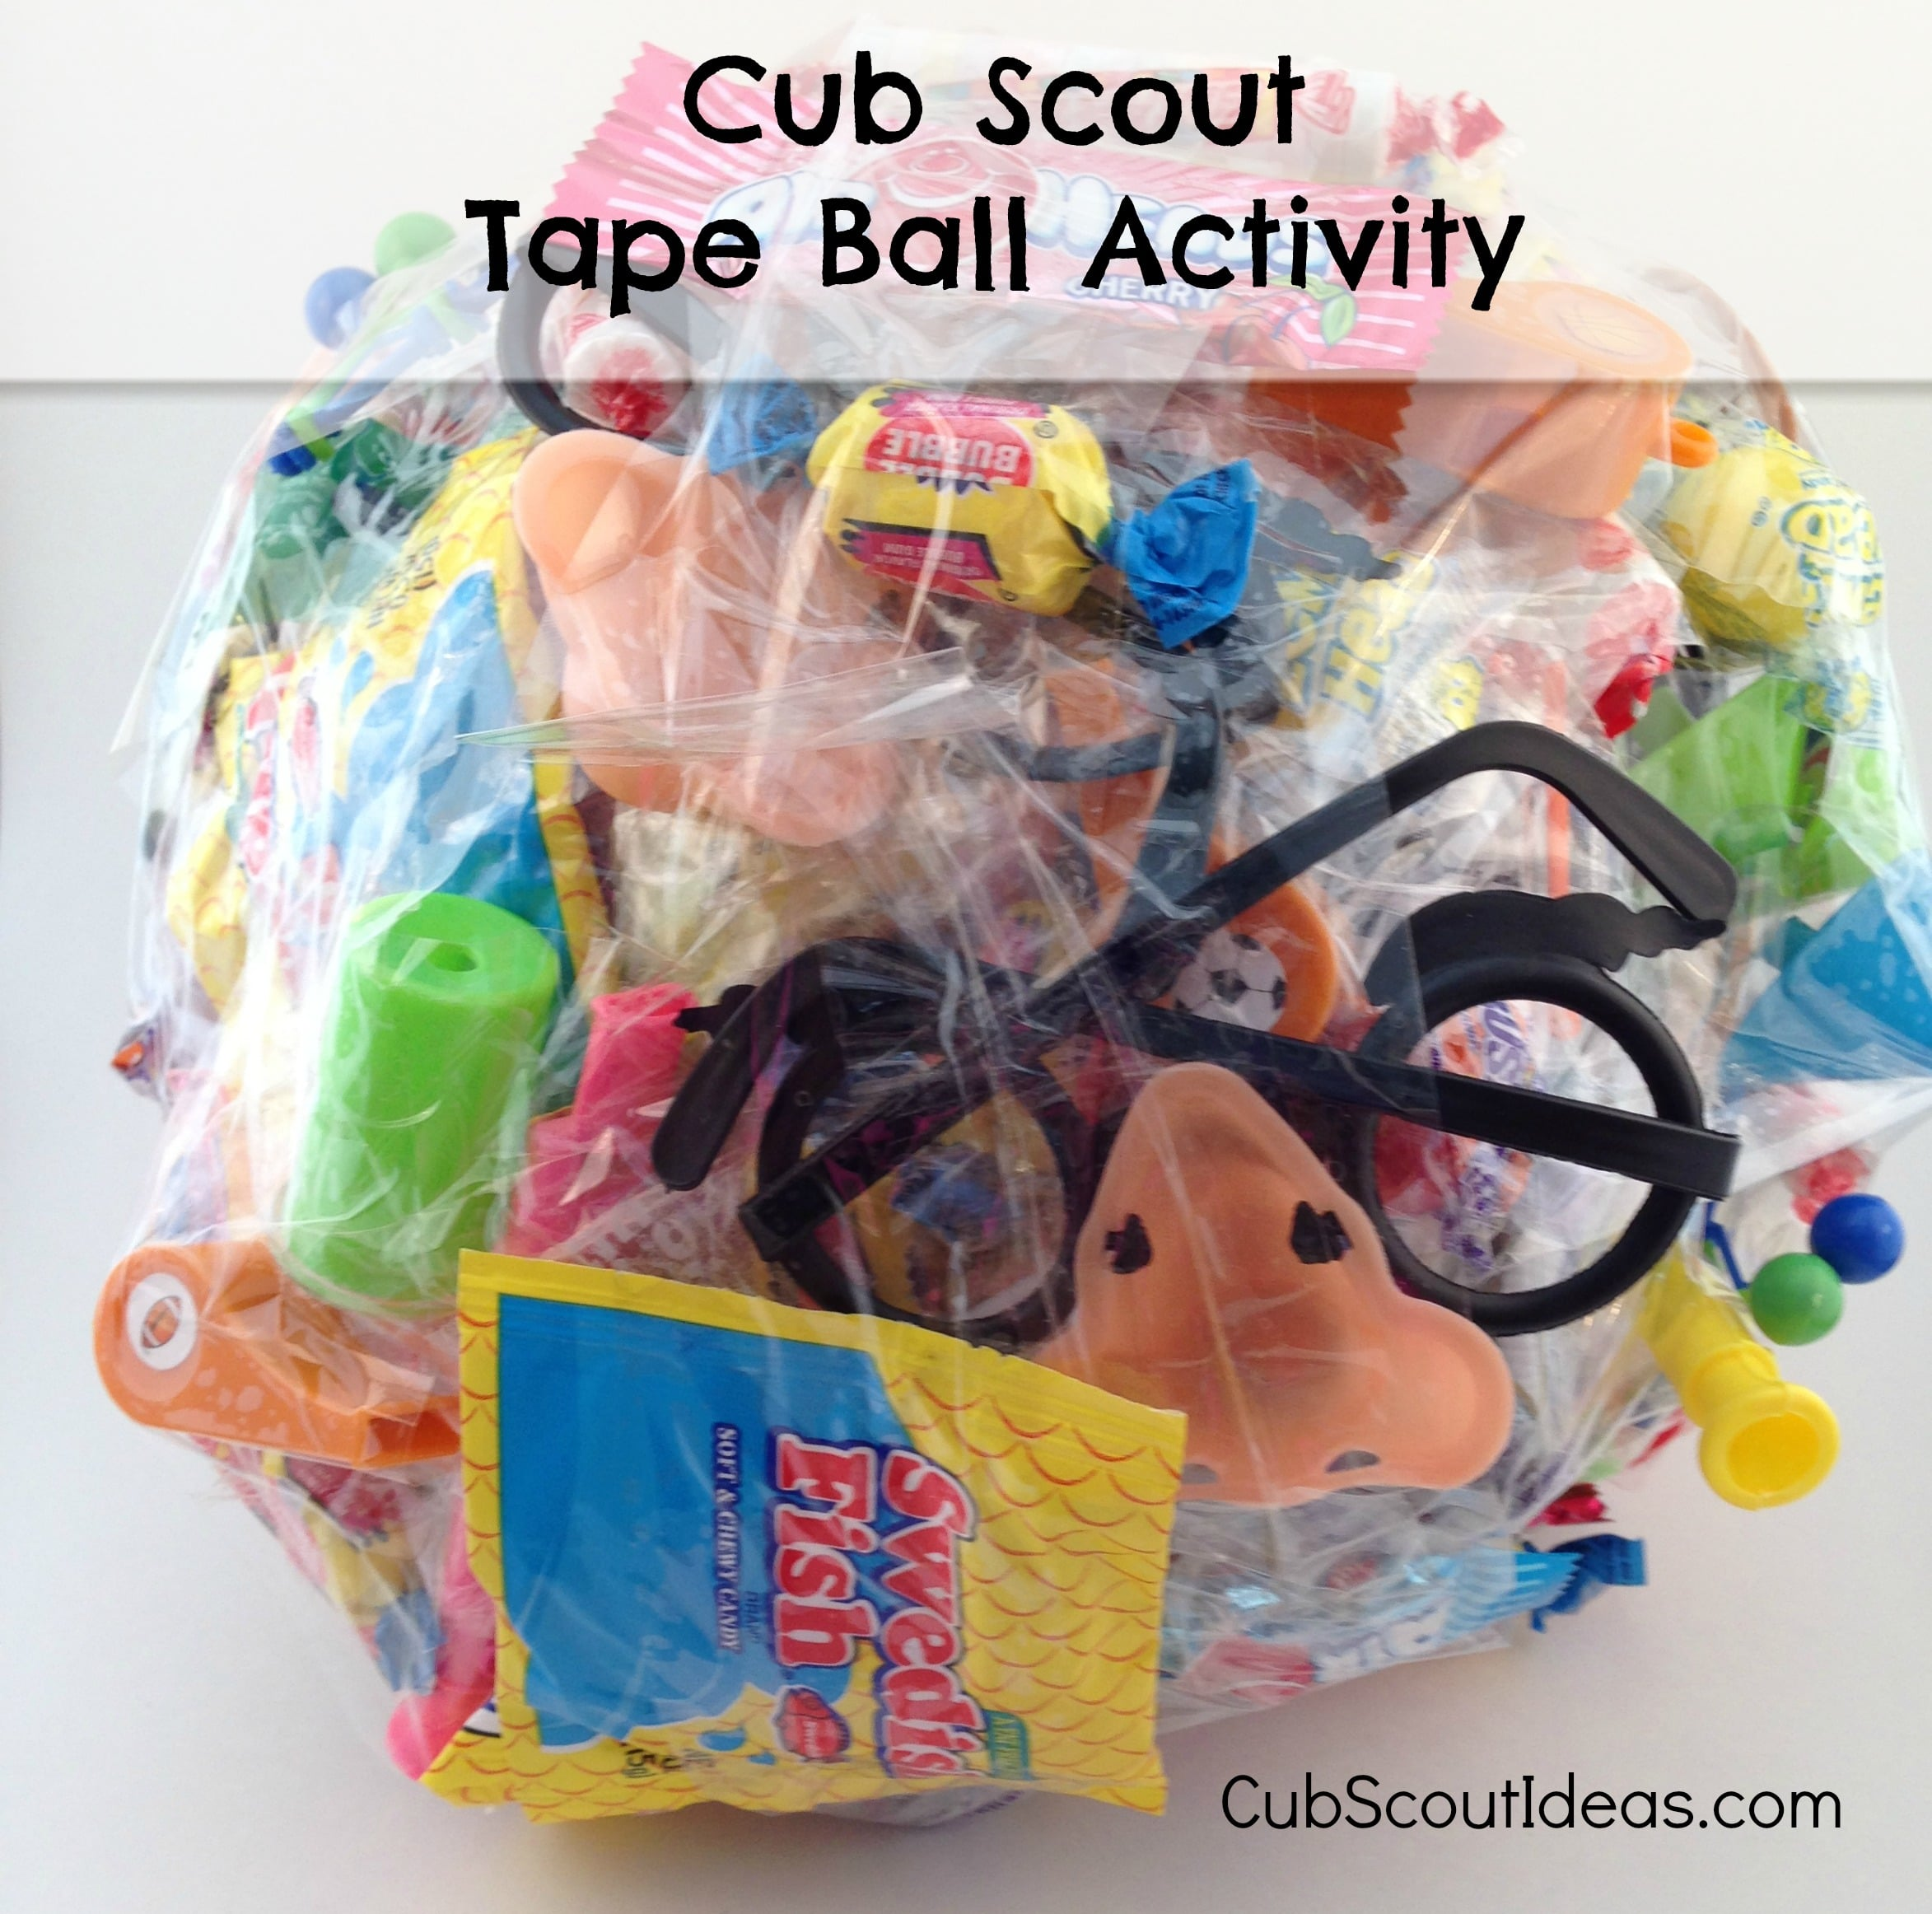 How to Make a Tape Ball for Cub Scout Activities